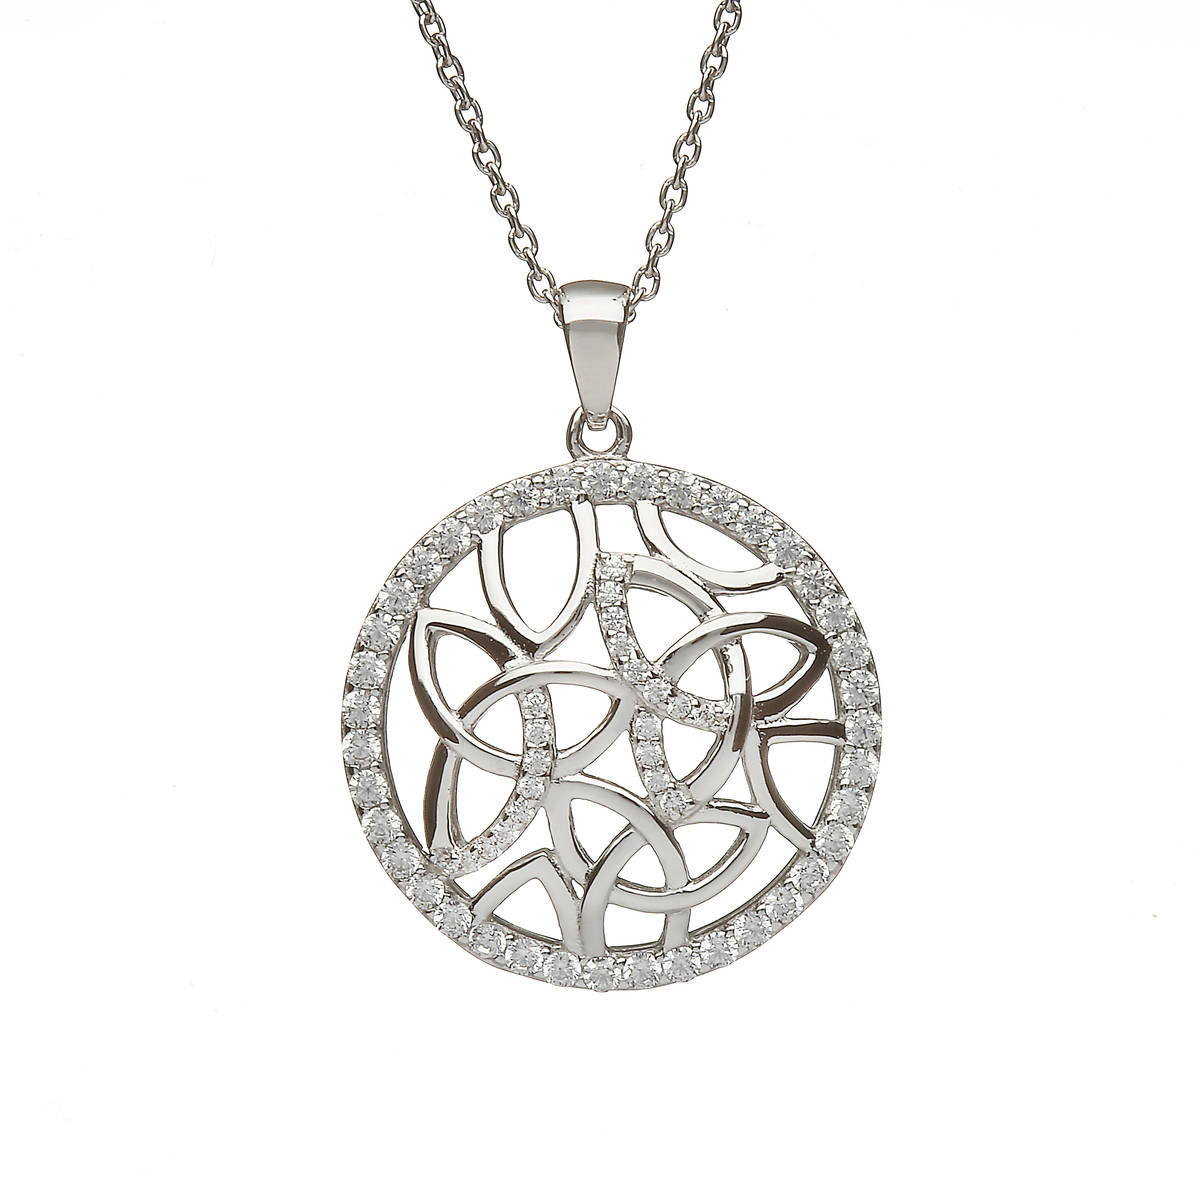 Sterling Silver Circular Trinity Knot Design Pendant Set With Cubic Zirconias